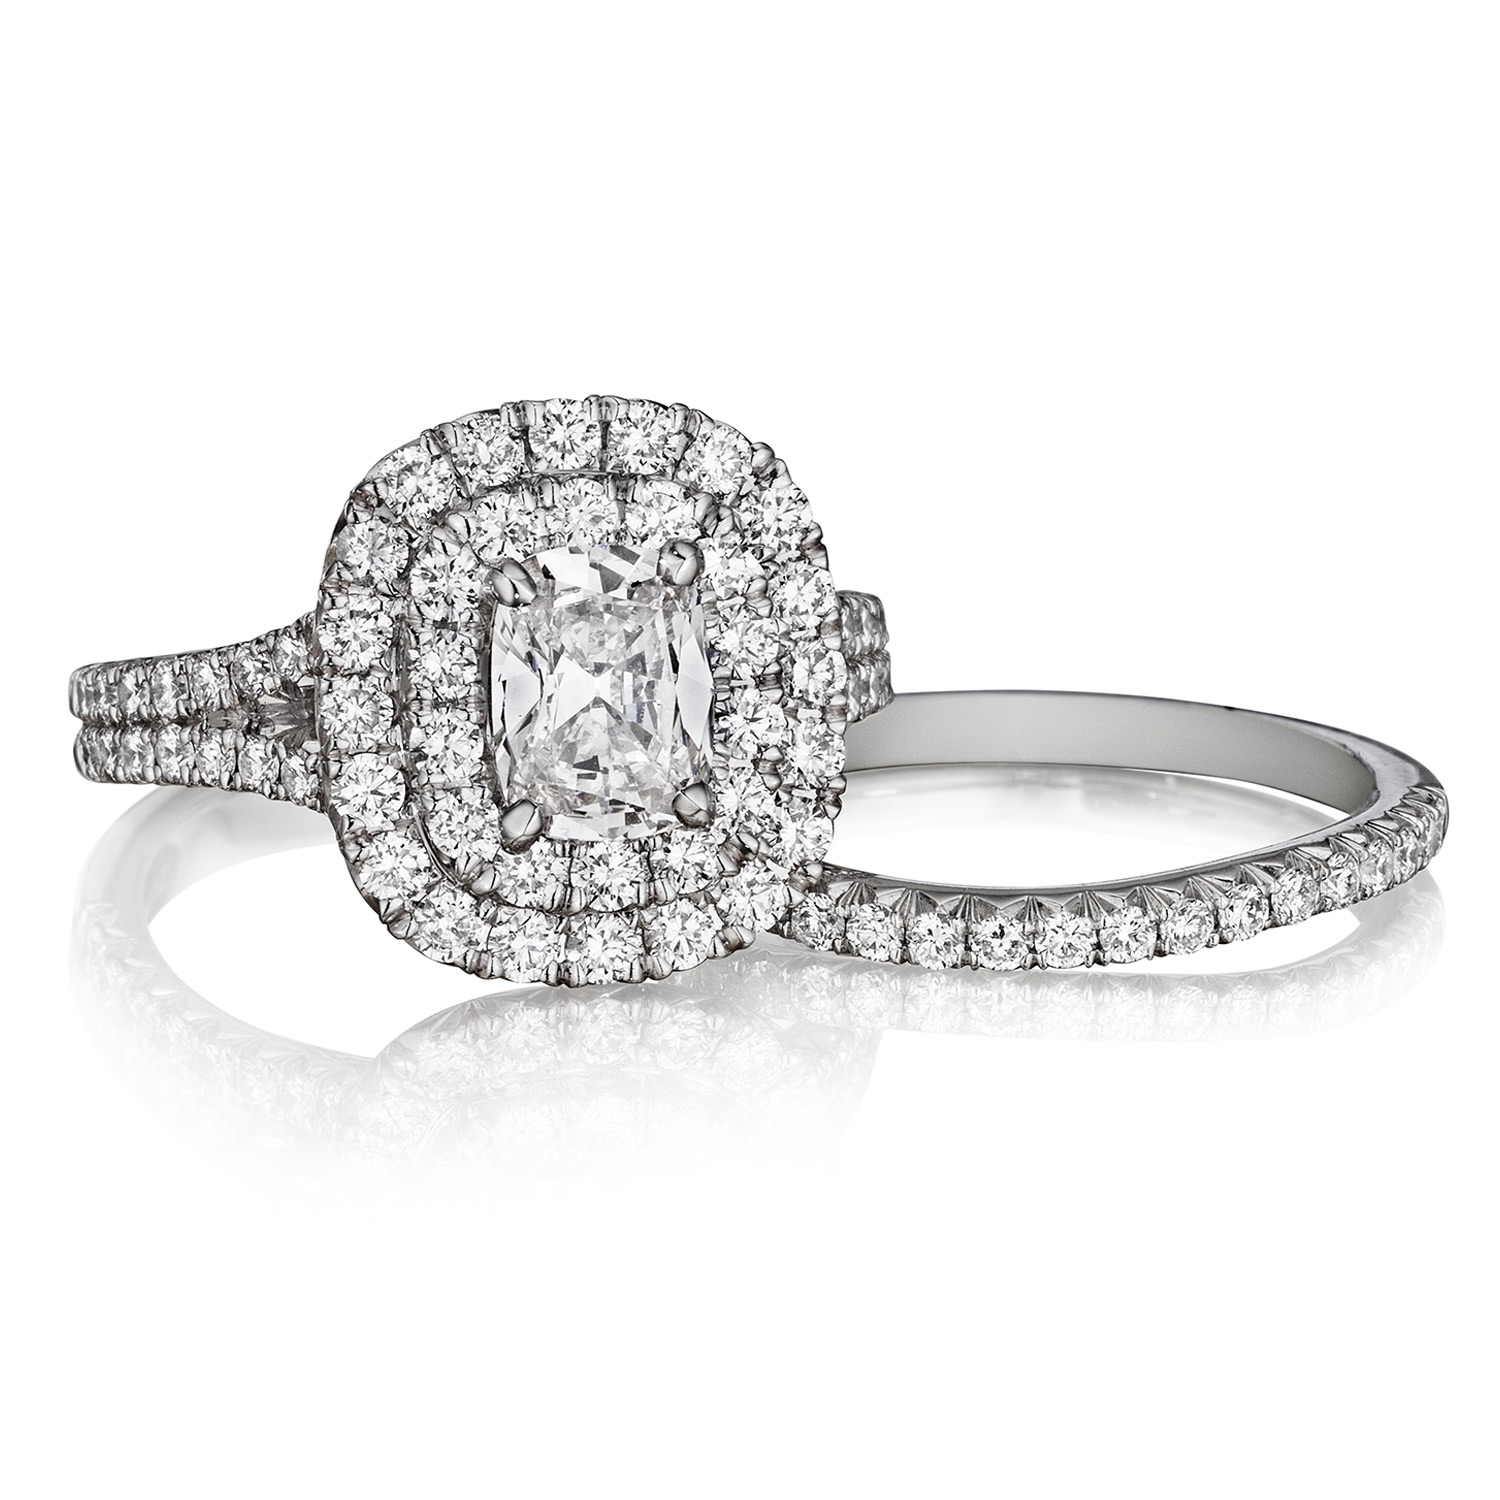 Henri Daussi AQS Cushion Double Halo Spilt Shank Diamond Engagement Ring Alternative View 2